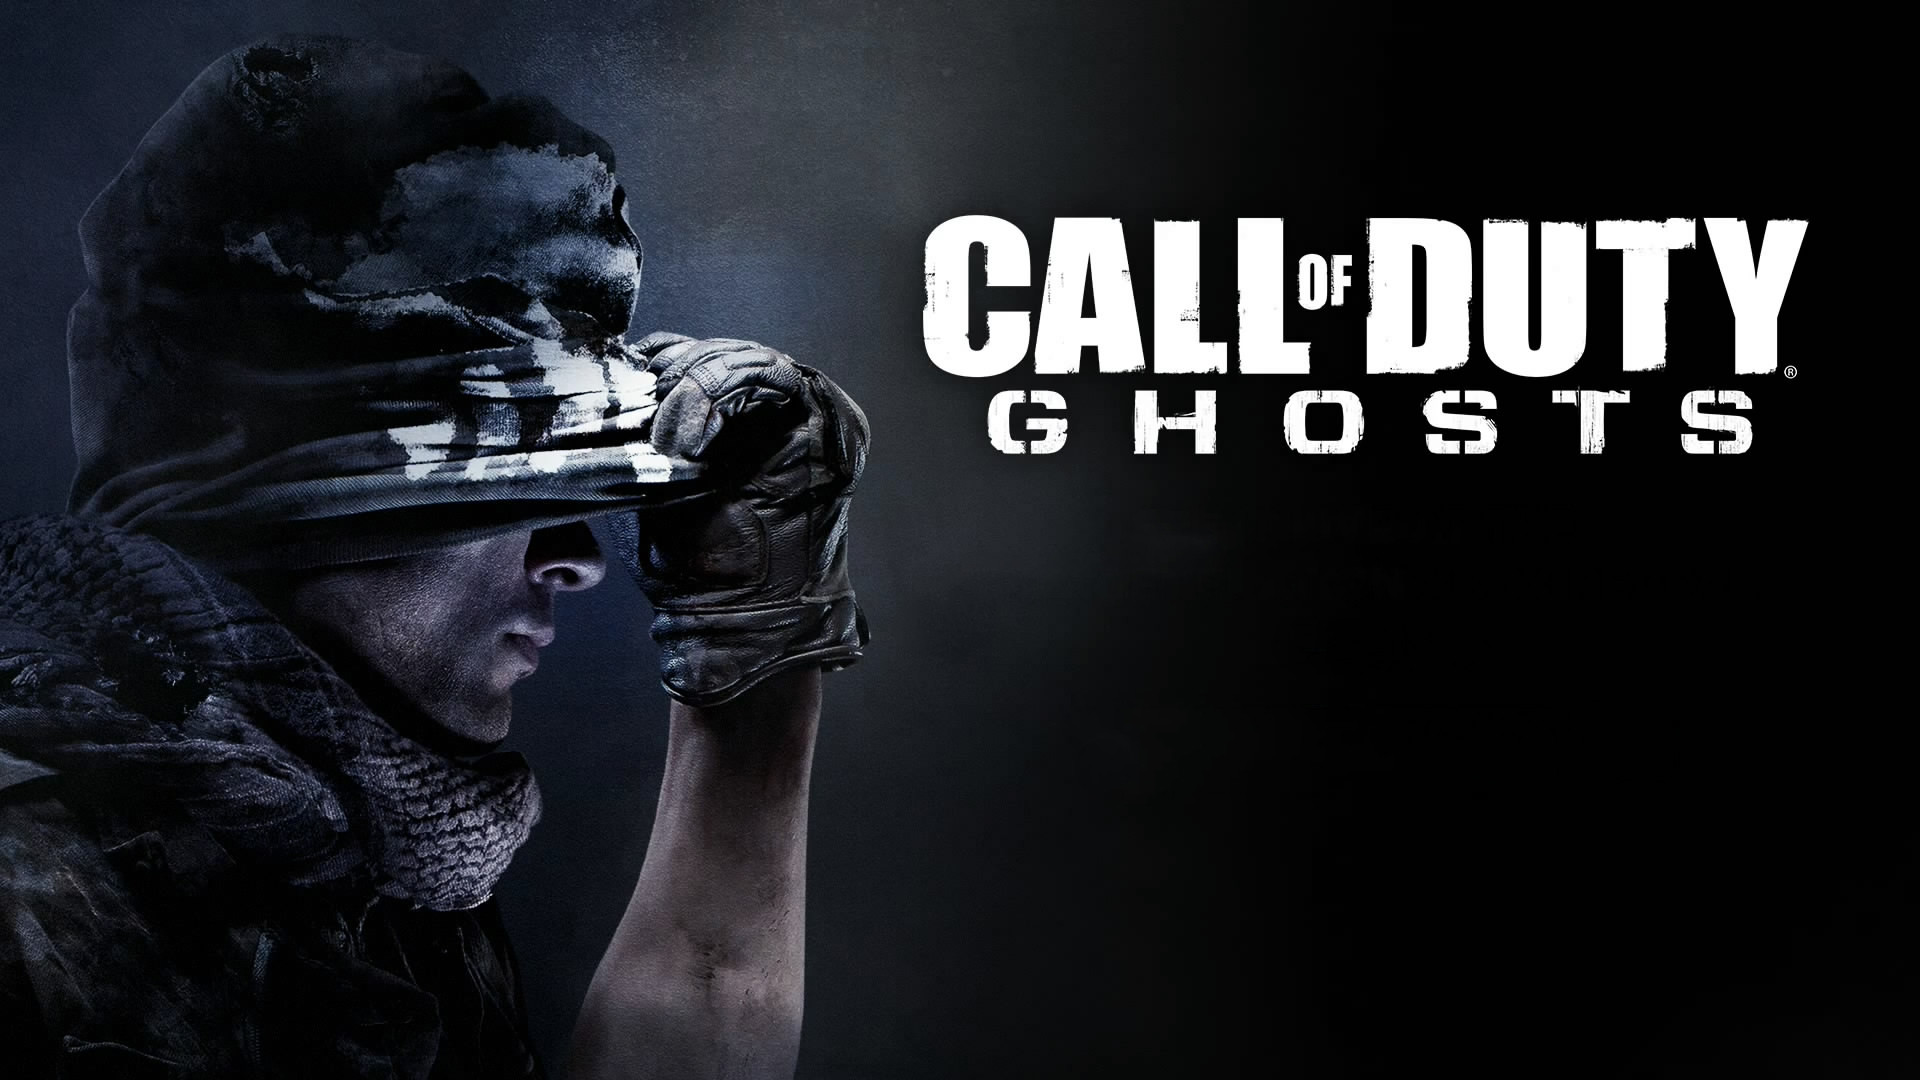 Full UK Charts – Call of Duty: Ghosts still tops the charts